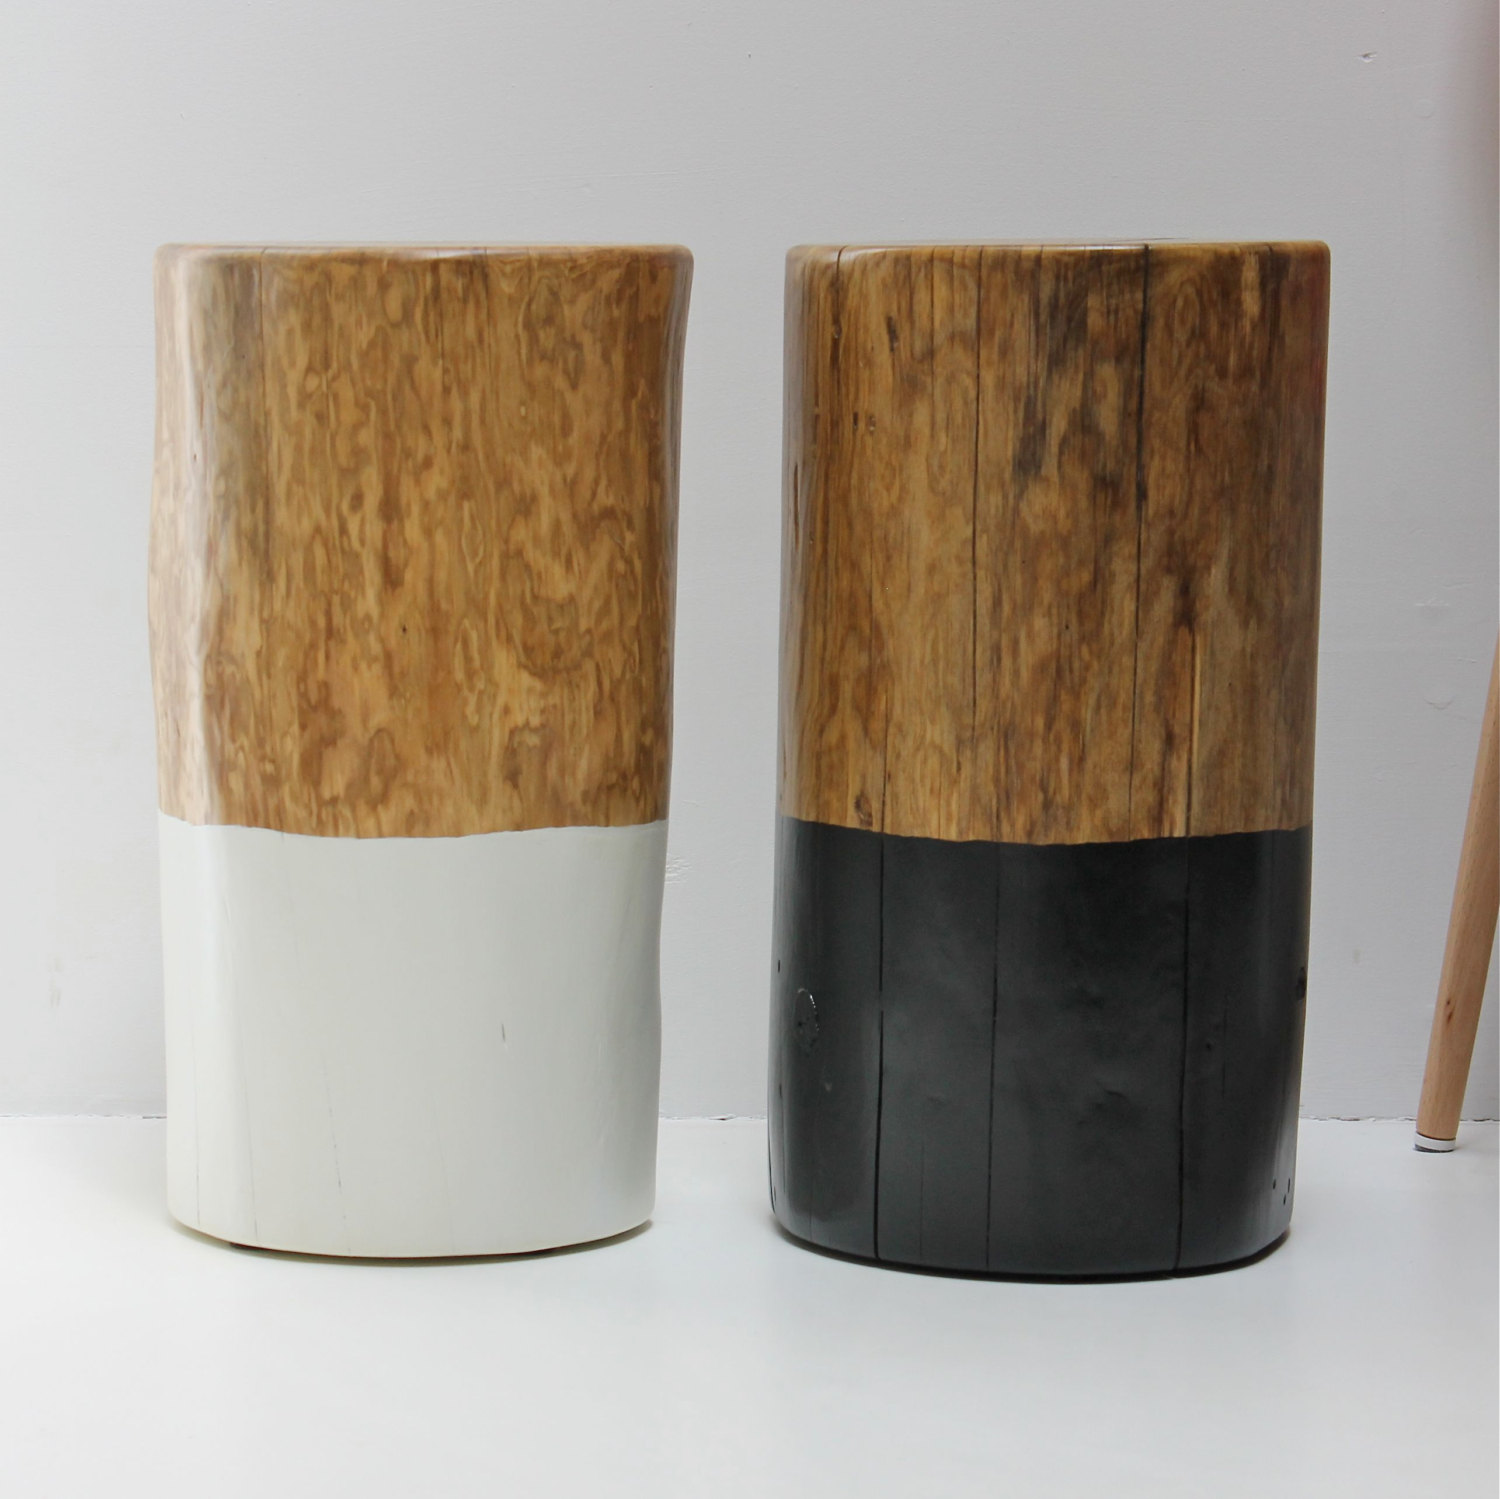 small white desk the perfect great log stump end table captivating tree nightstand lovely home decorating ideas with digitalliteracyco parsons cabinet live edge cocktail ashley